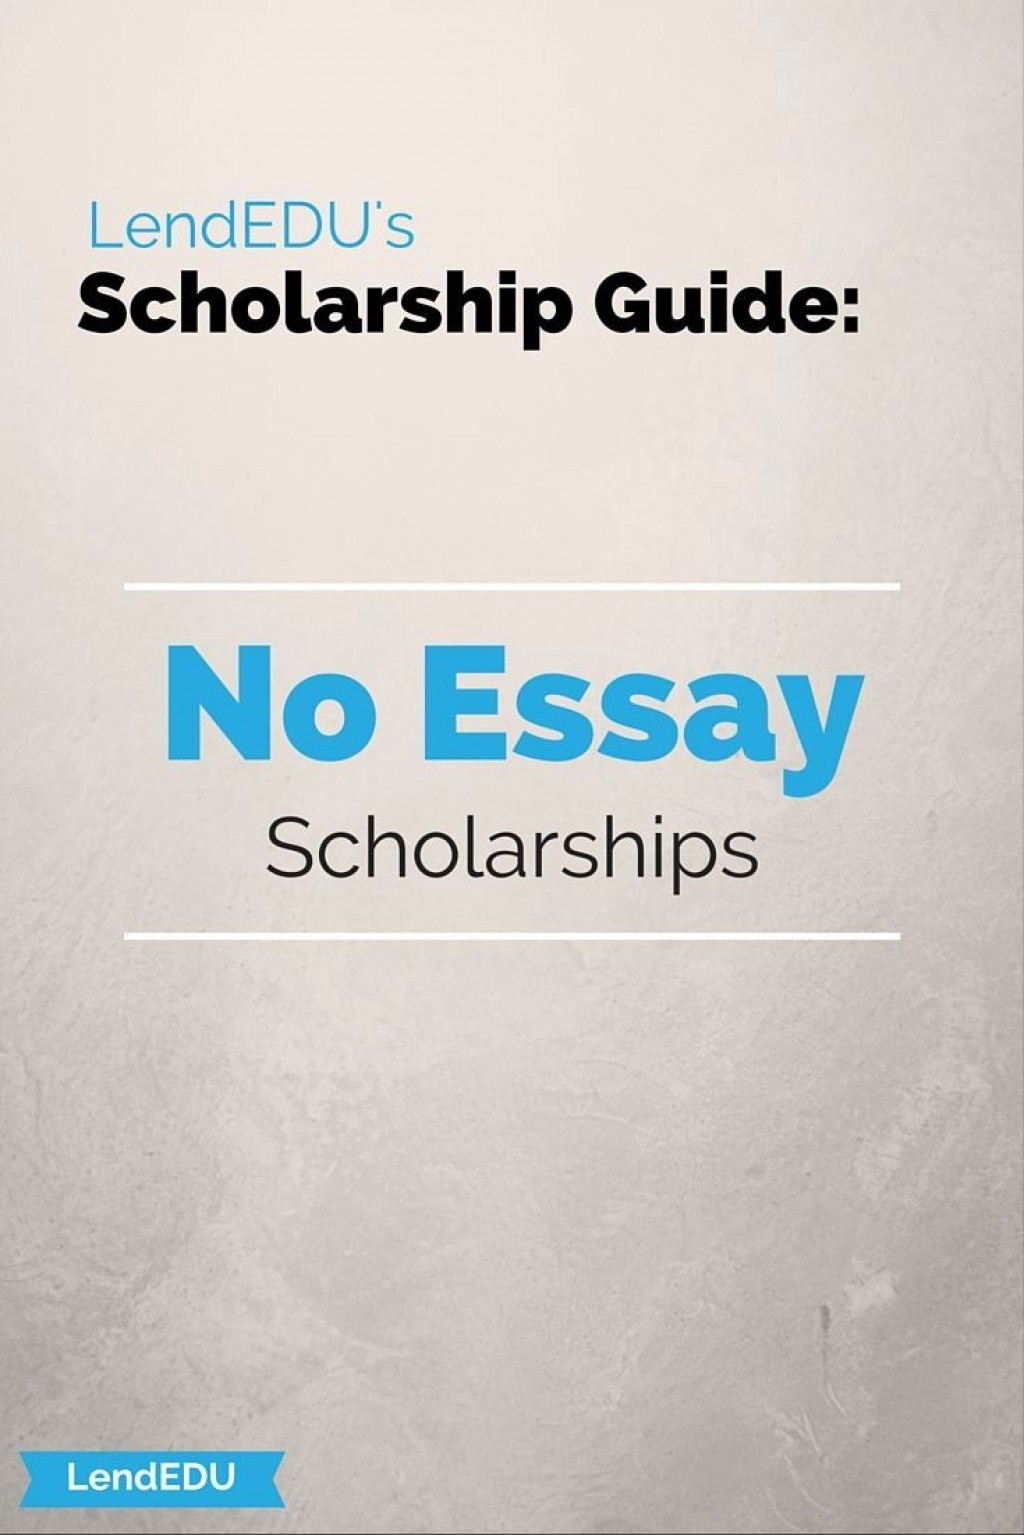 018 No Essay Scholarships Example Exceptional For Undergraduates High School Seniors College Students 2019 Large